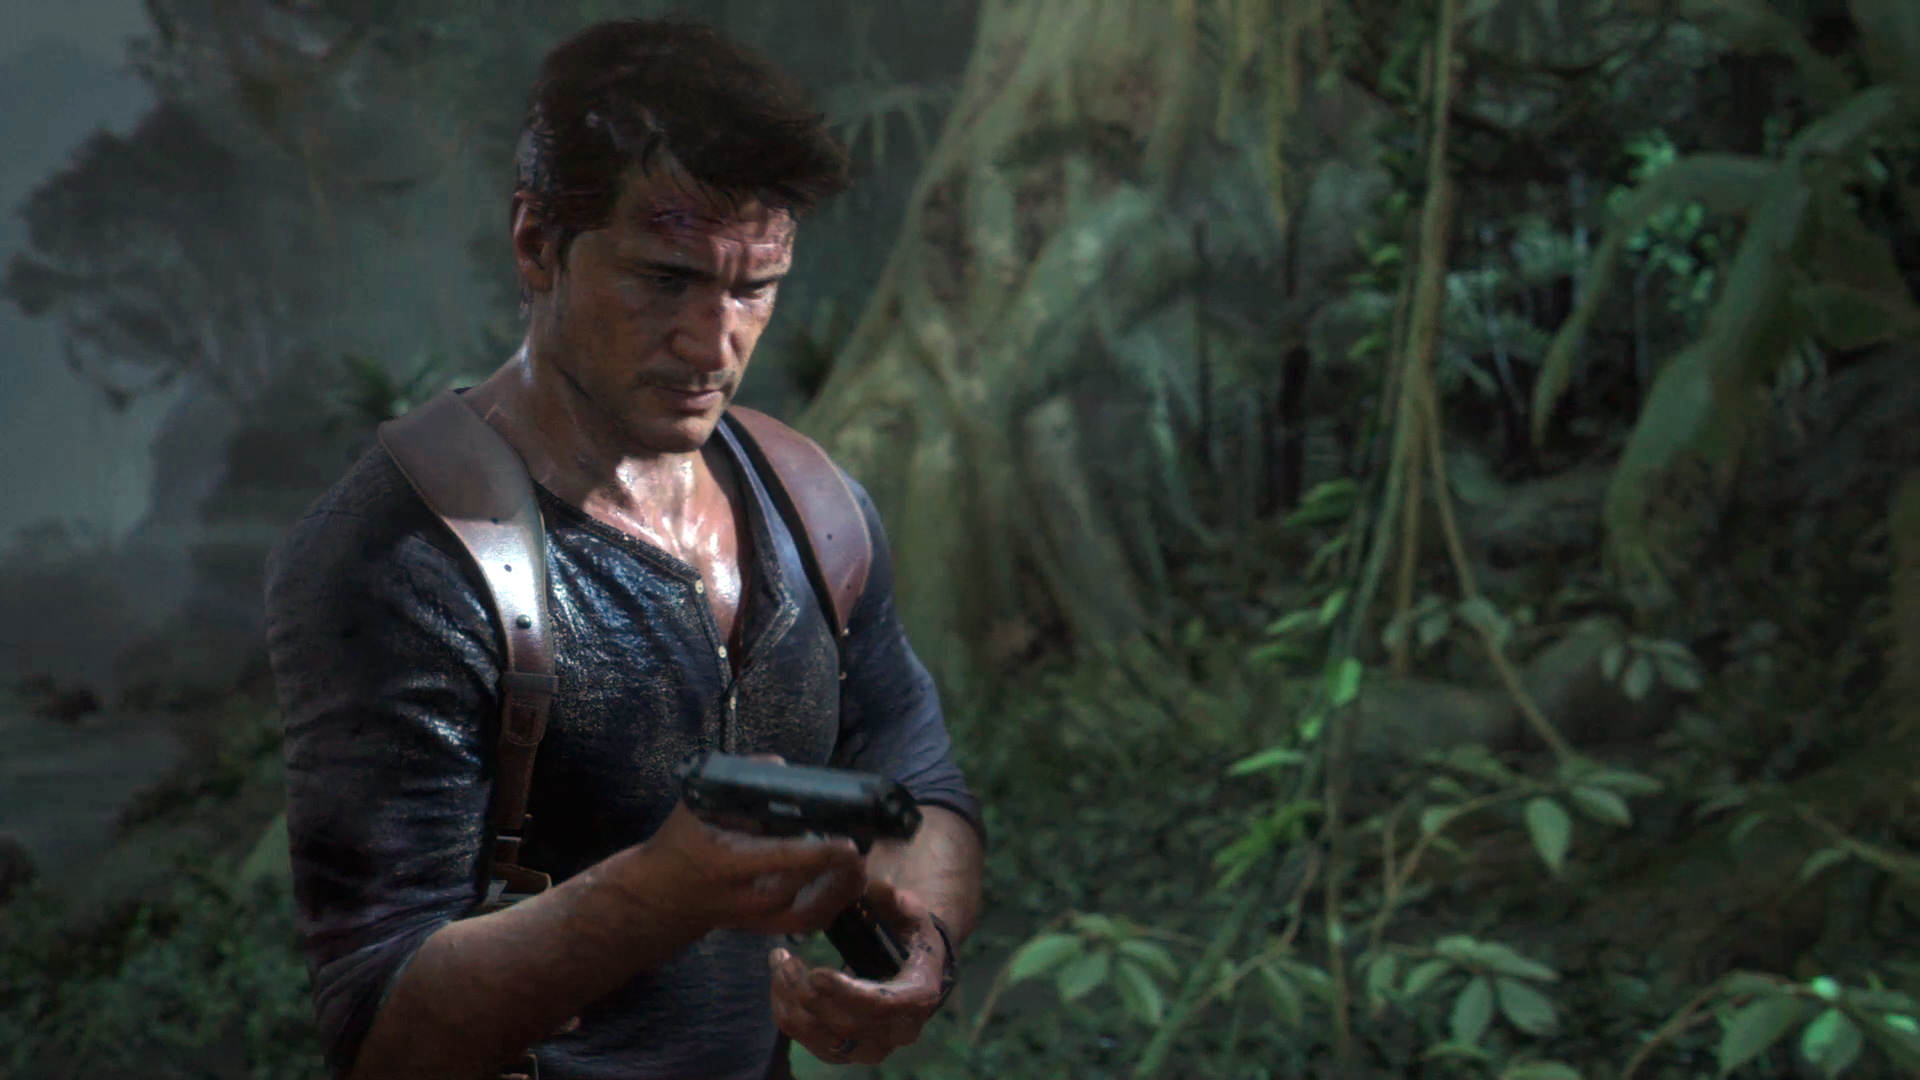 b4759e4c8493cdf1fa5f742c4c3f442cd8e433ad Uncharted 4s Ending Will Cause Controversy, Says Director